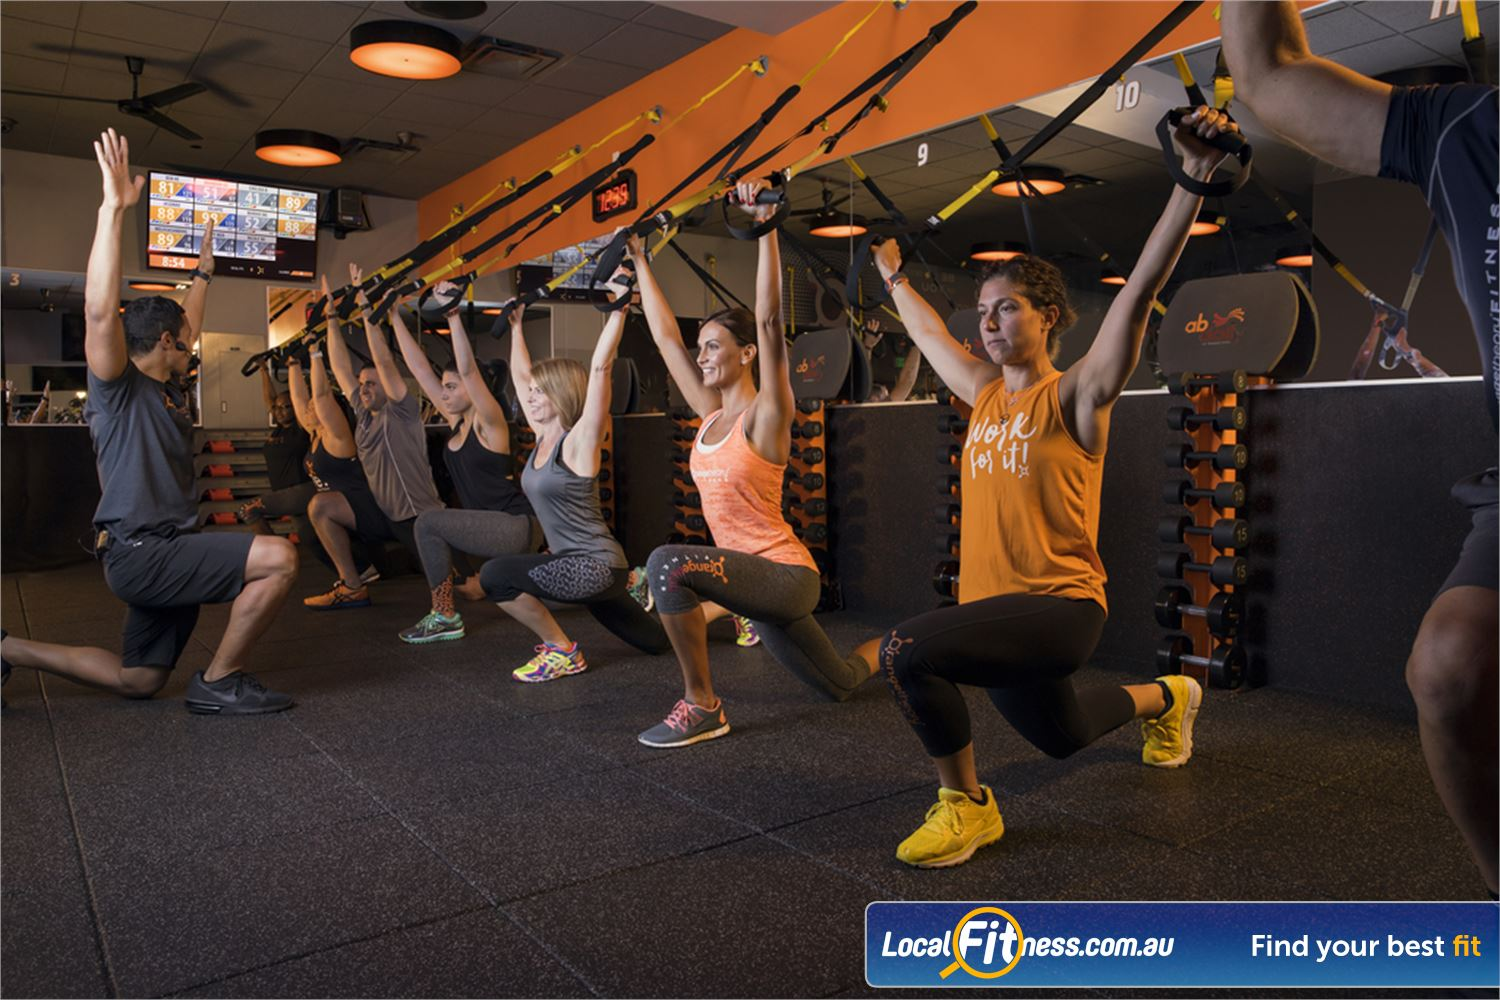 Orangetheory Fitness South Yarra Orangetheory South Yarra is a one-of-a-kind, group personal training workout.